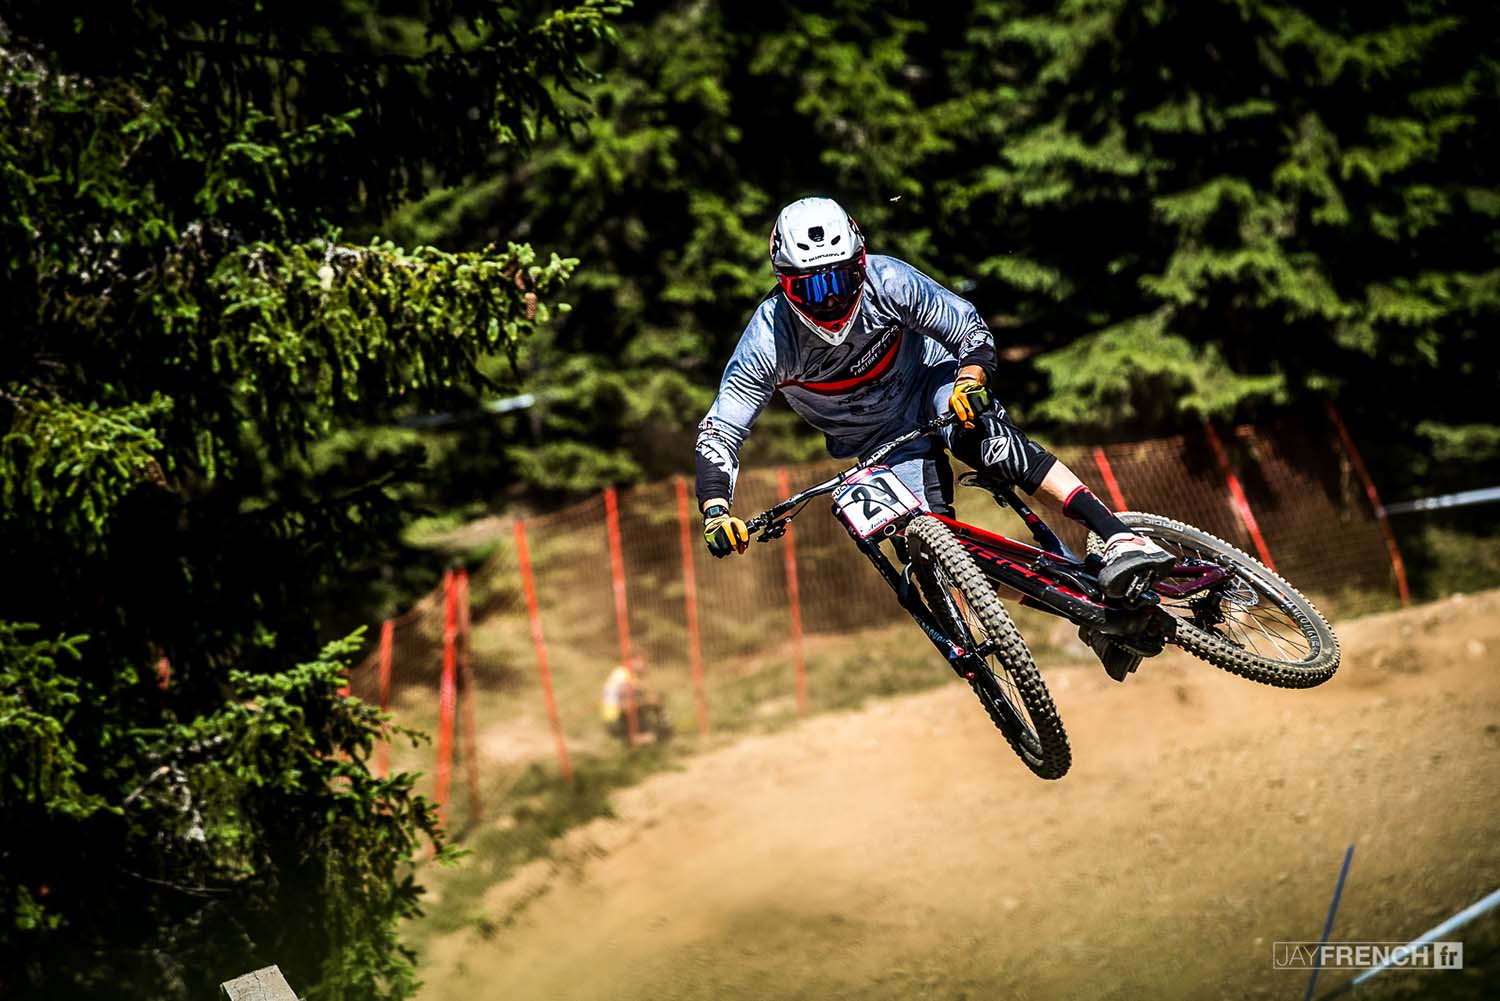 The stylish Sam Blenkinsop didint have his best day on the clock